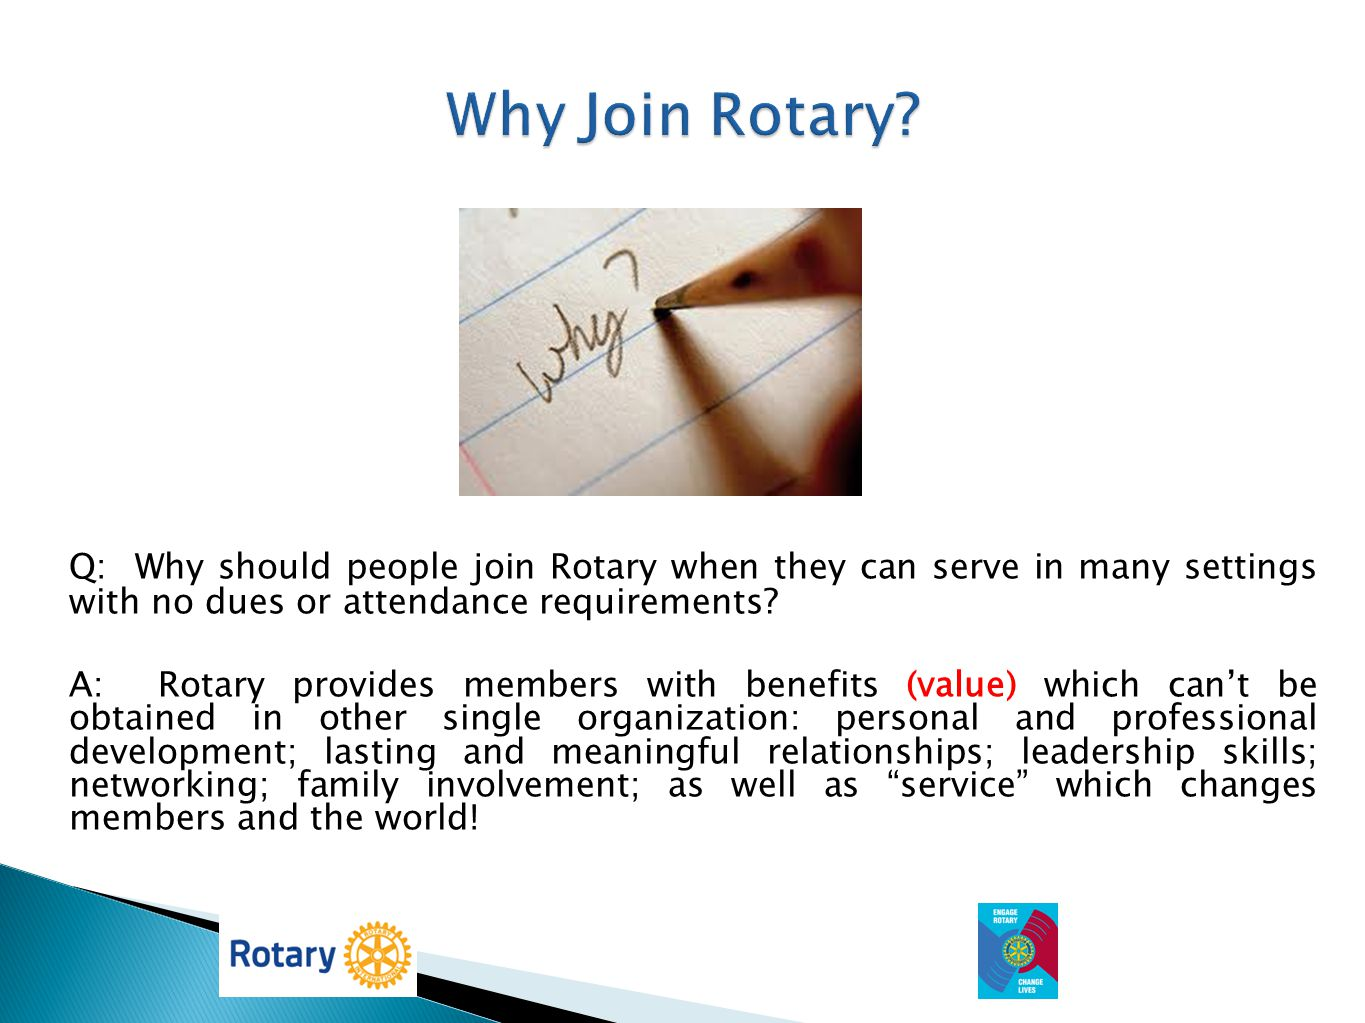 Why Join Rotary Q: Why should people join Rotary when they can serve in many settings with no dues or attendance requirements